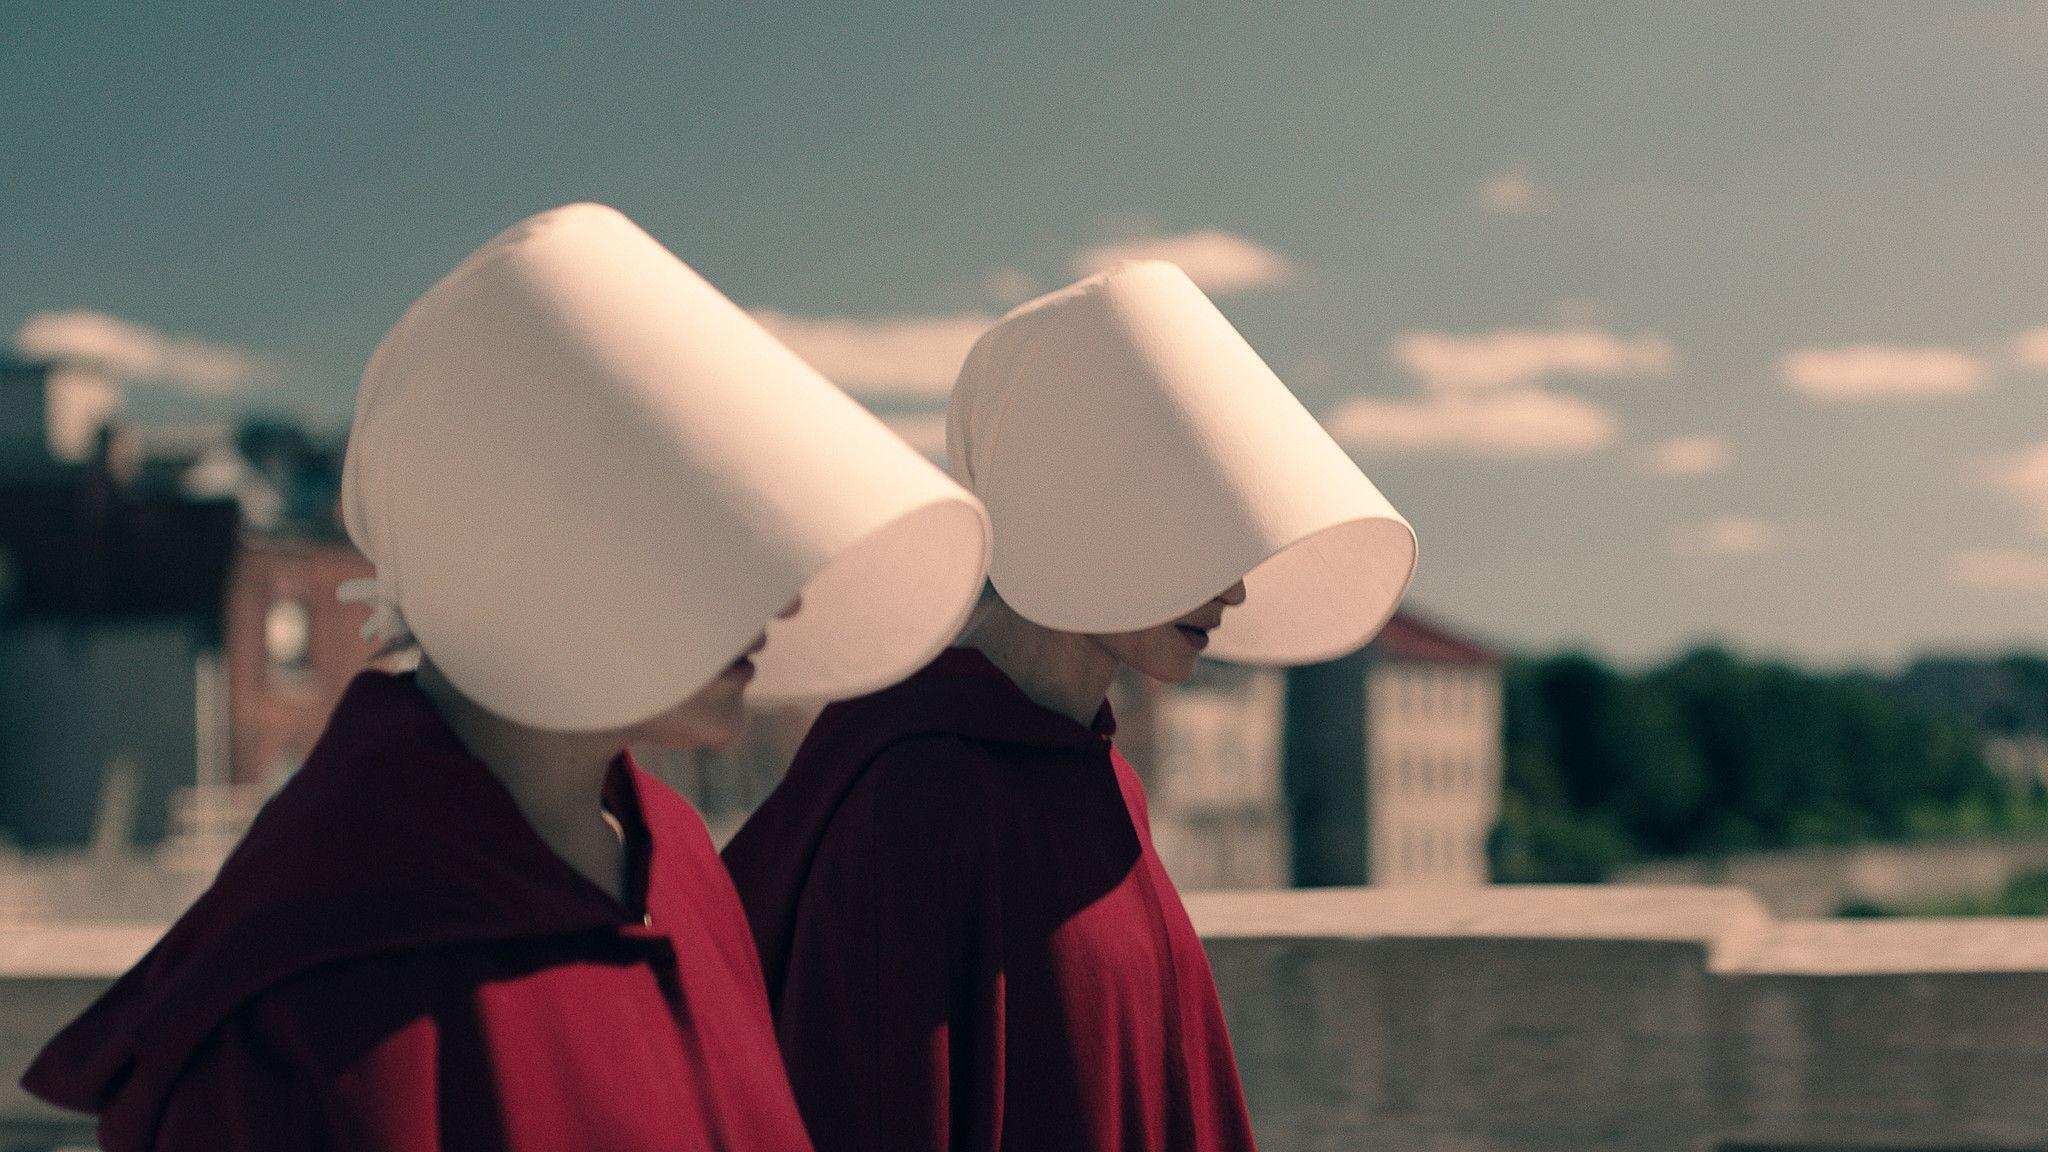 Meet the women who brought the misogynist world of 'The Handmaid's